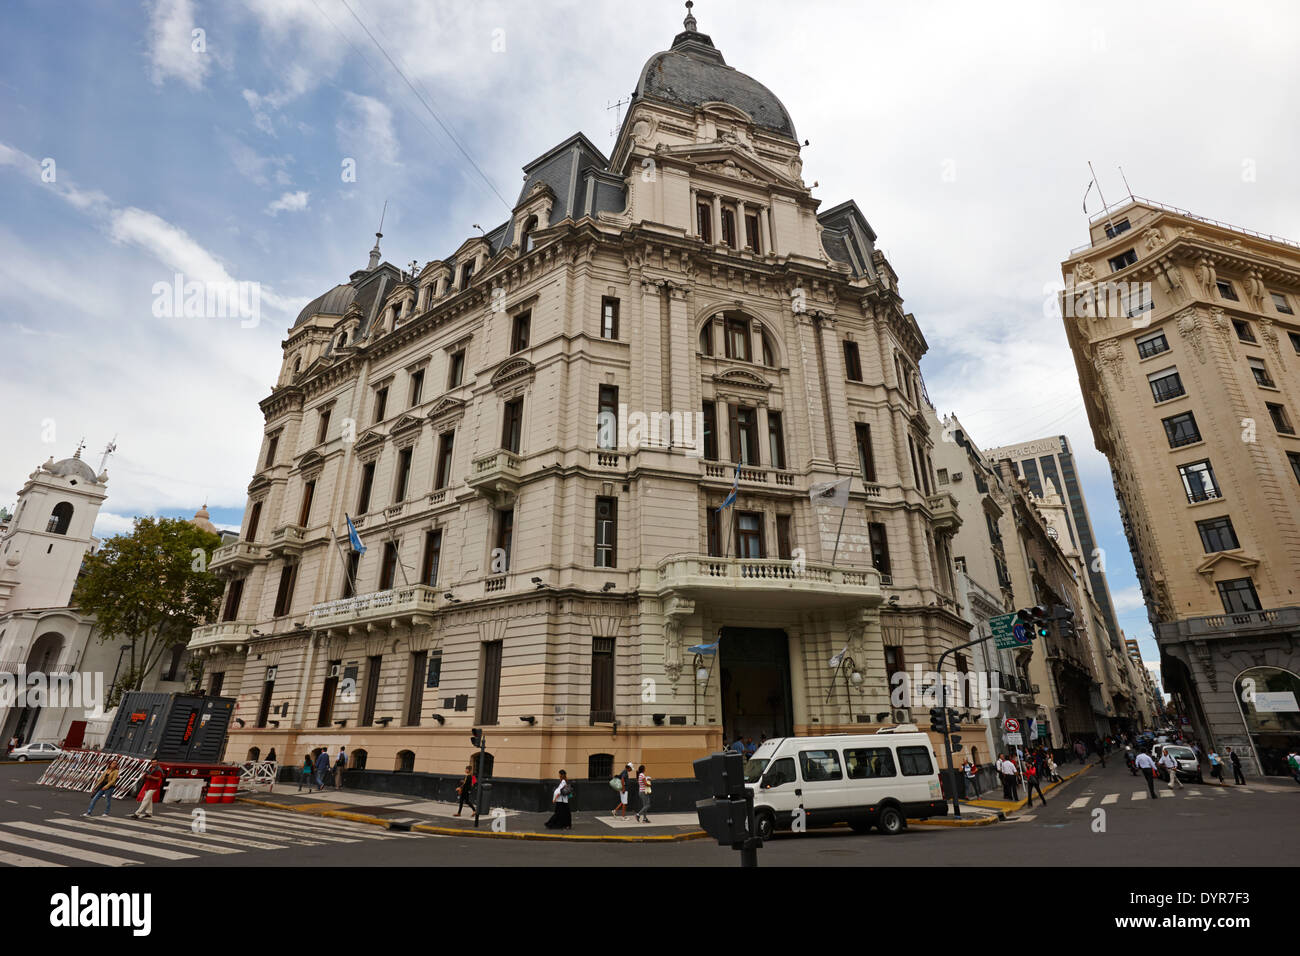 Buenos Aires city hall on plaza de mayo Argentina - Stock Image